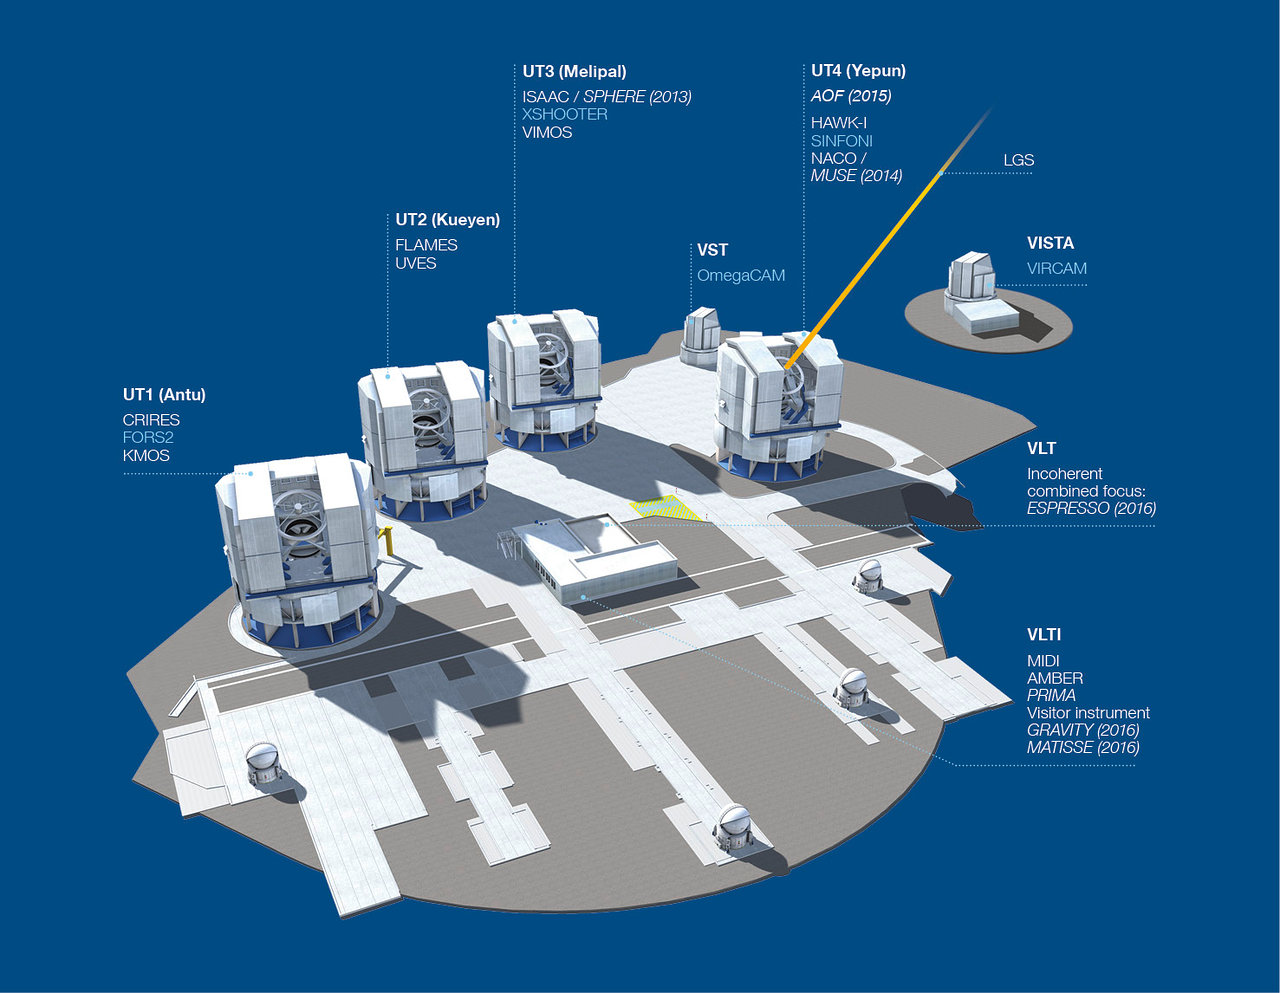 VLT Instrumentation for P92